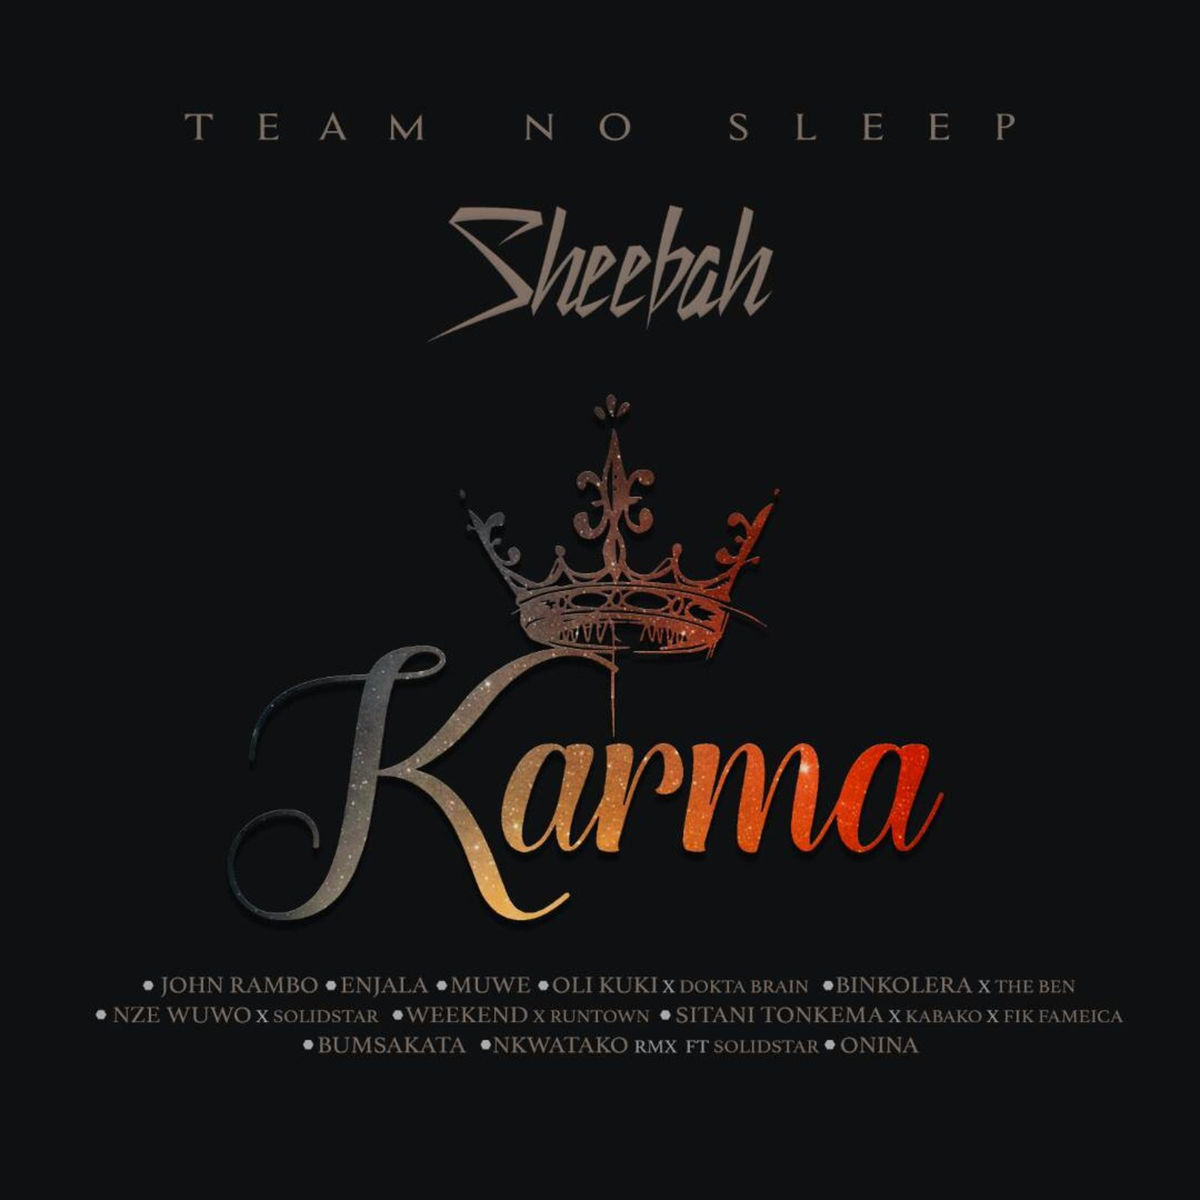 Karma Queen Album - Sheebah Karungi, Music Album, Tracklist - UG Ziki